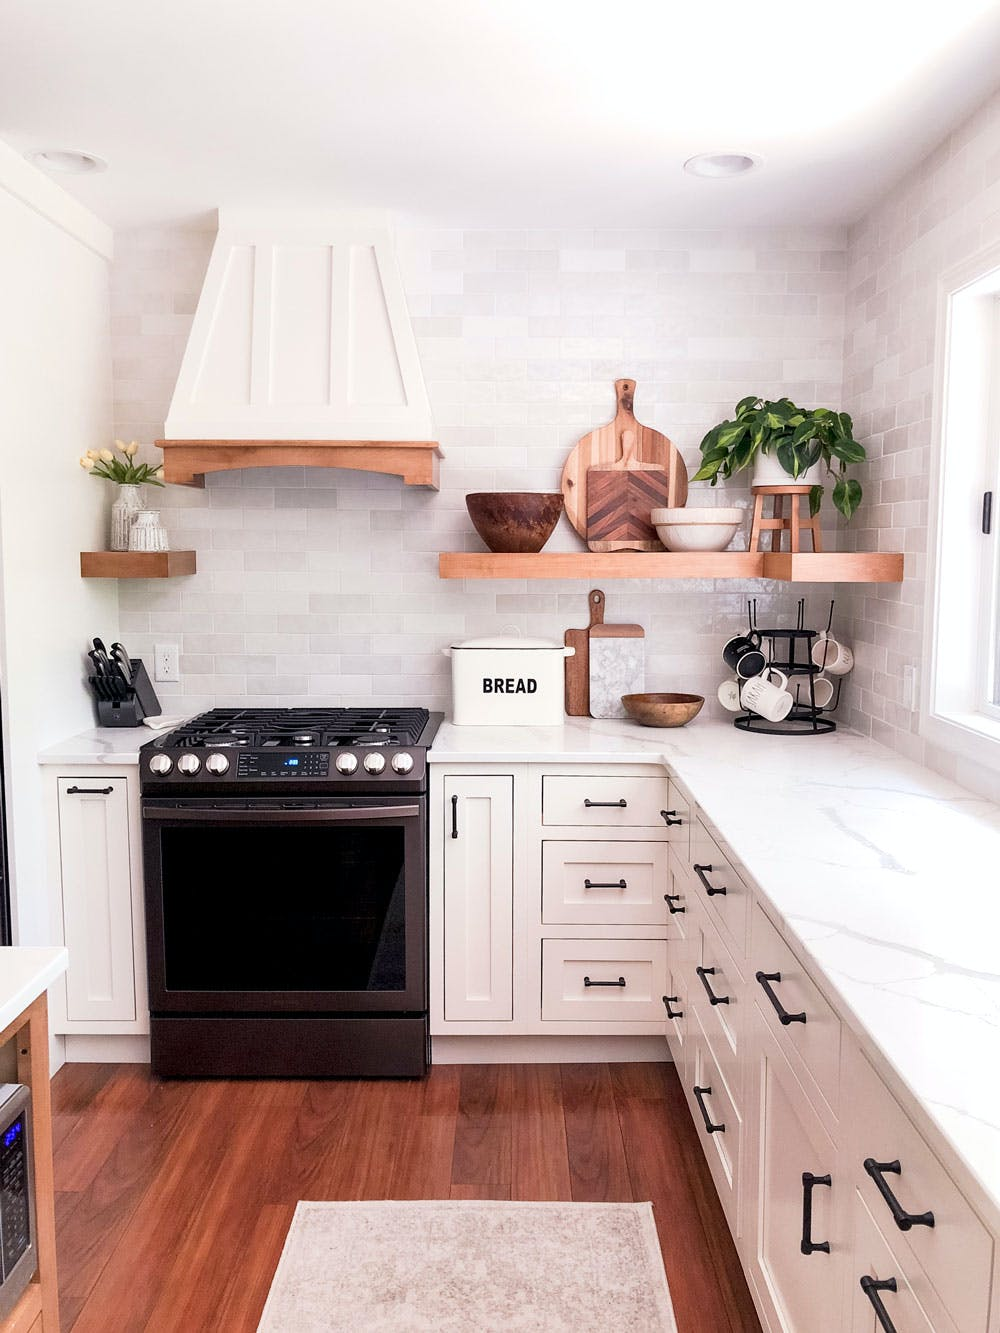 white fafmhouse kitchen with black appliances